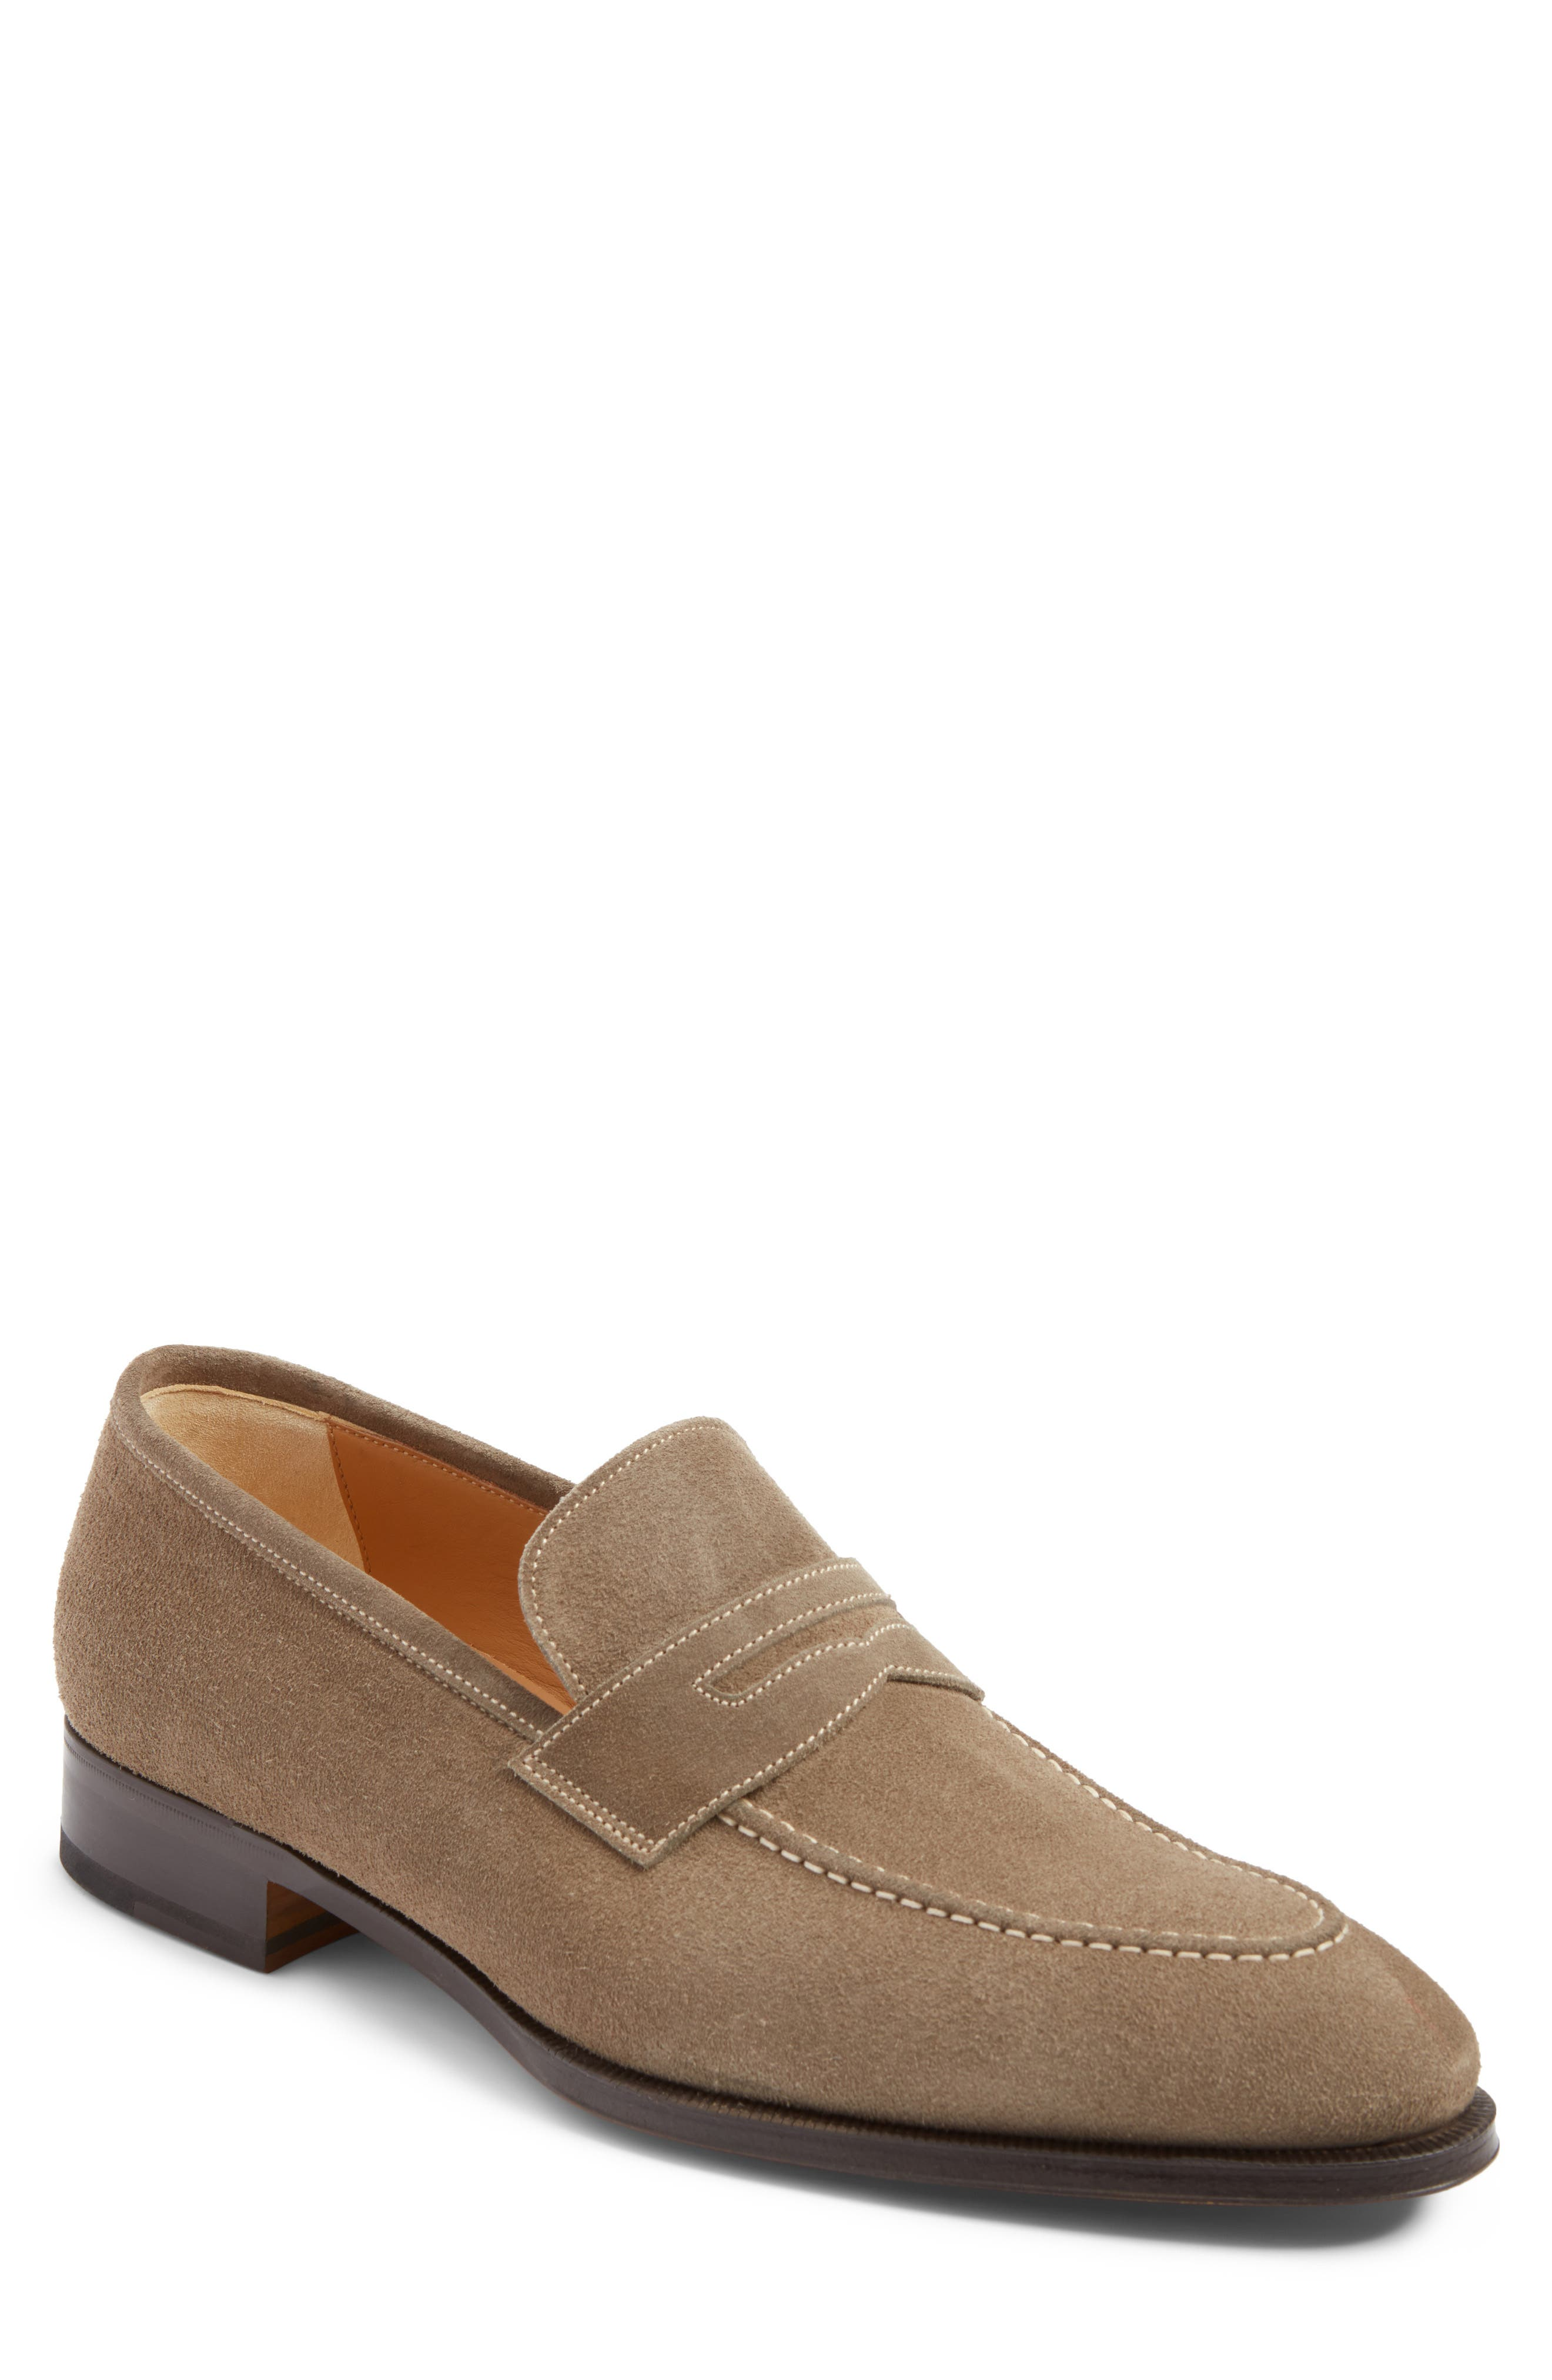 Leather Penny Loafer,                             Main thumbnail 5, color,